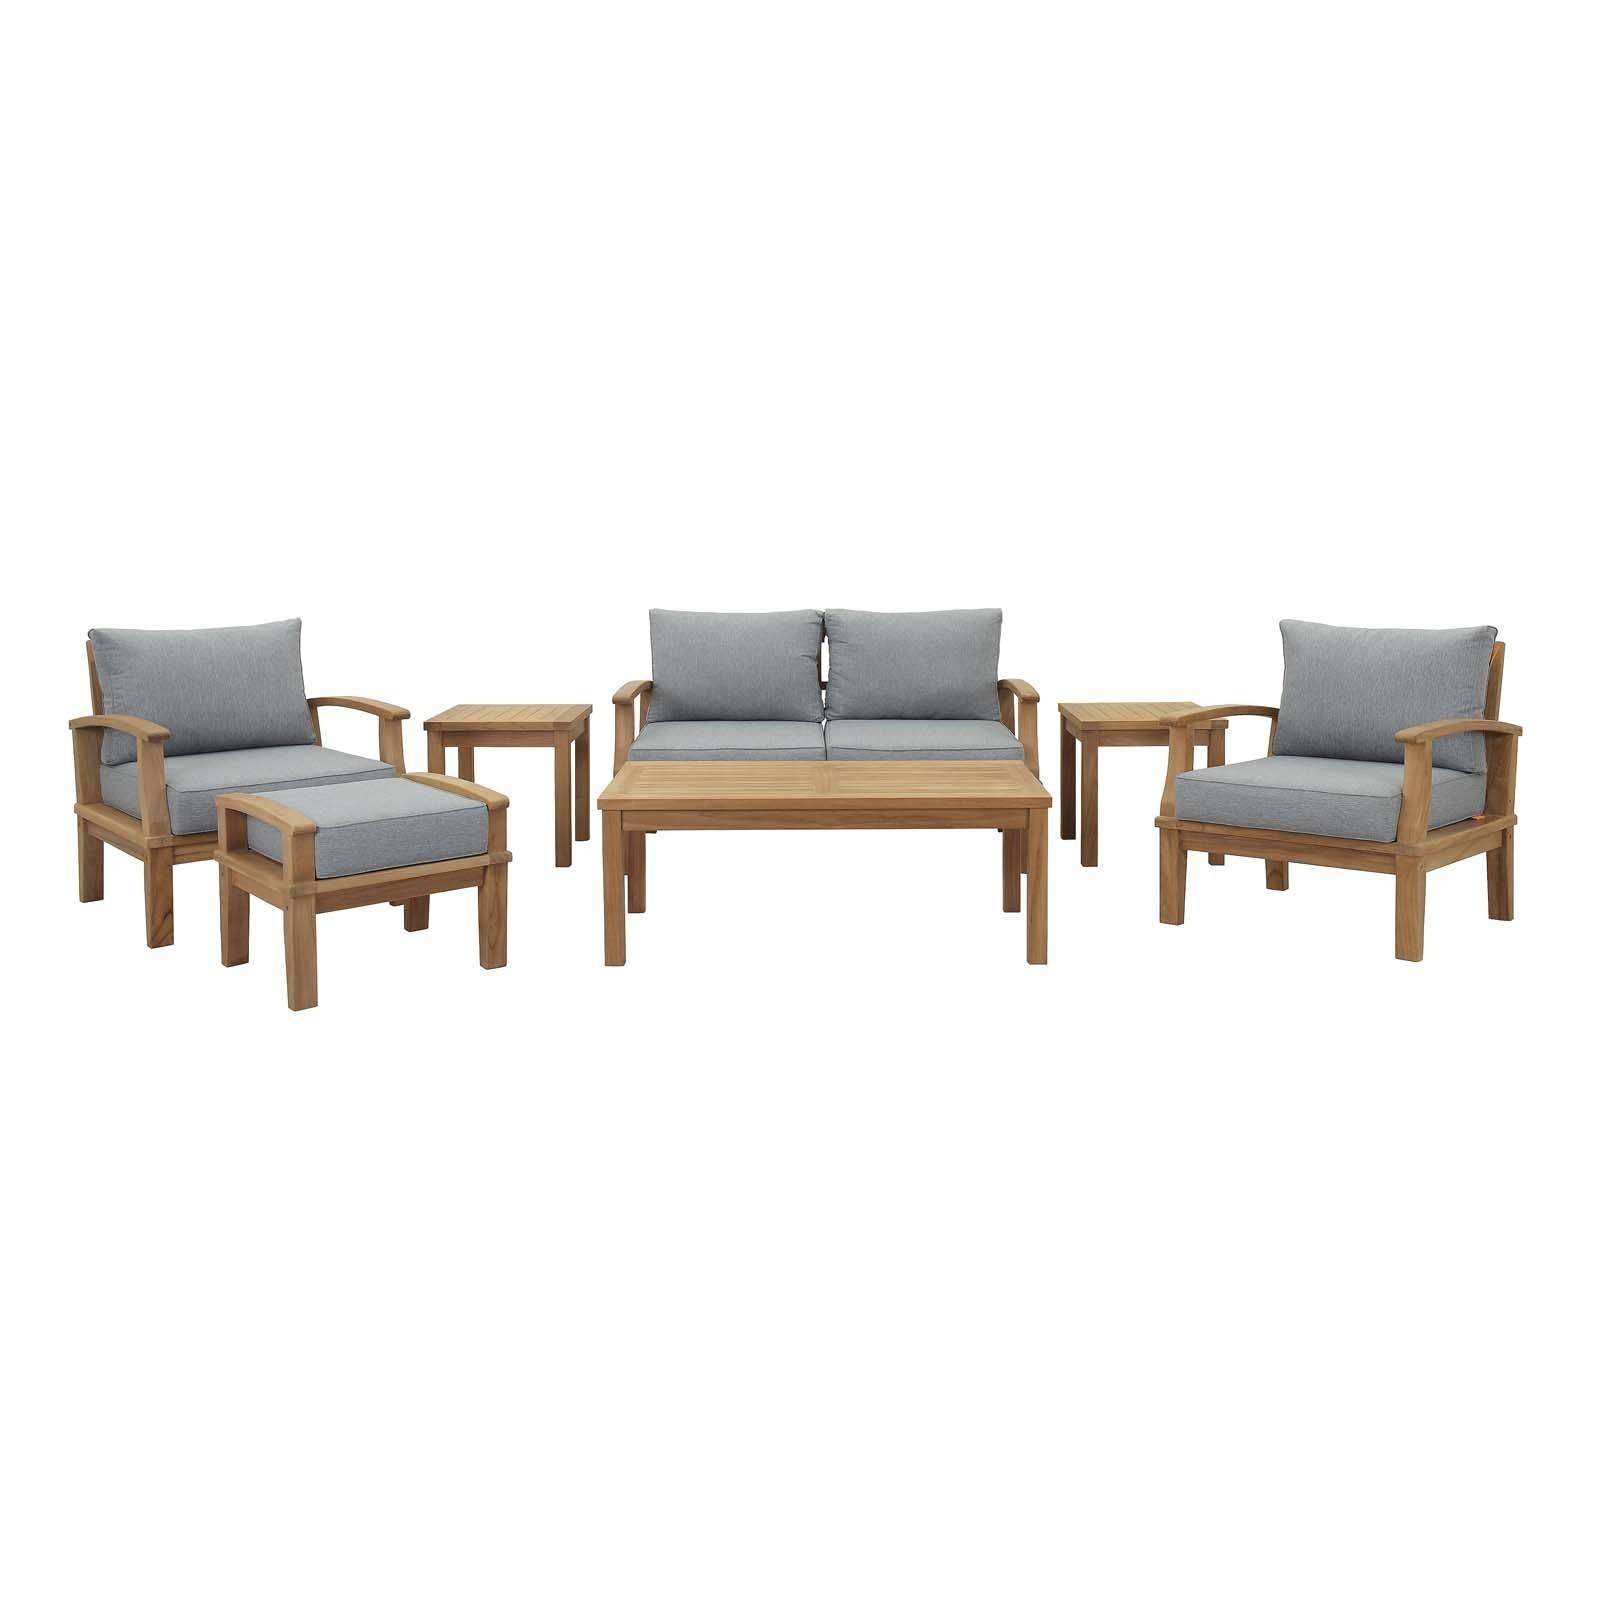 Astounding Modterior Outdoor Sectional Sets Marina 7 Piece Download Free Architecture Designs Sospemadebymaigaardcom